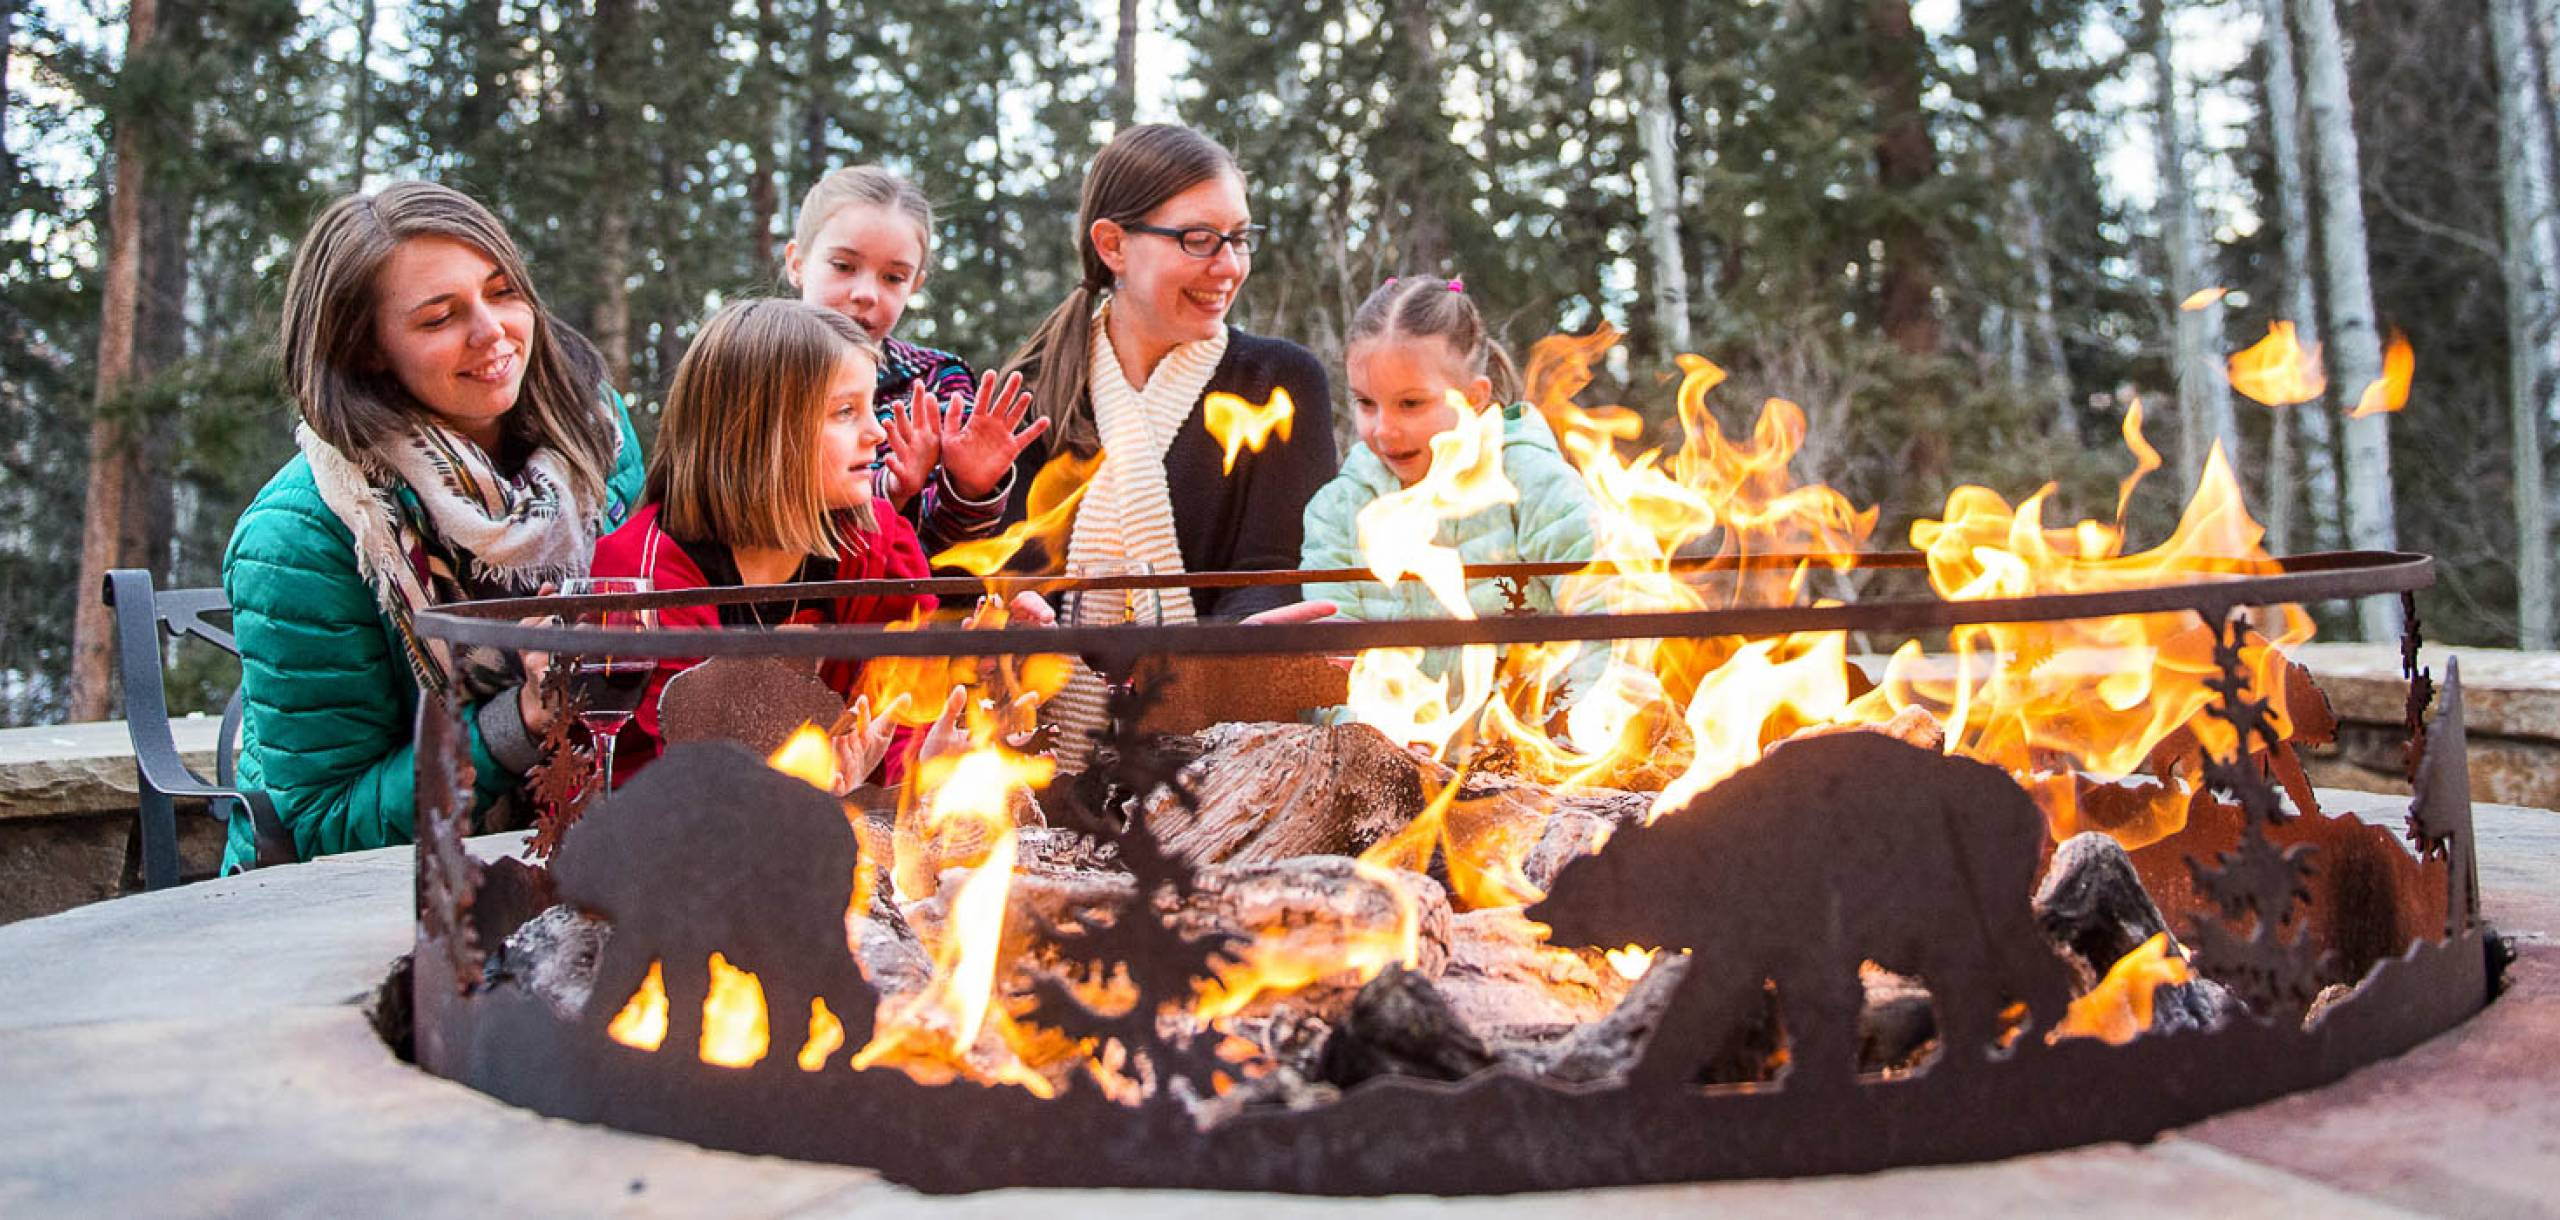 Bear Creek Lodge Telluride Fire Pit Gathering